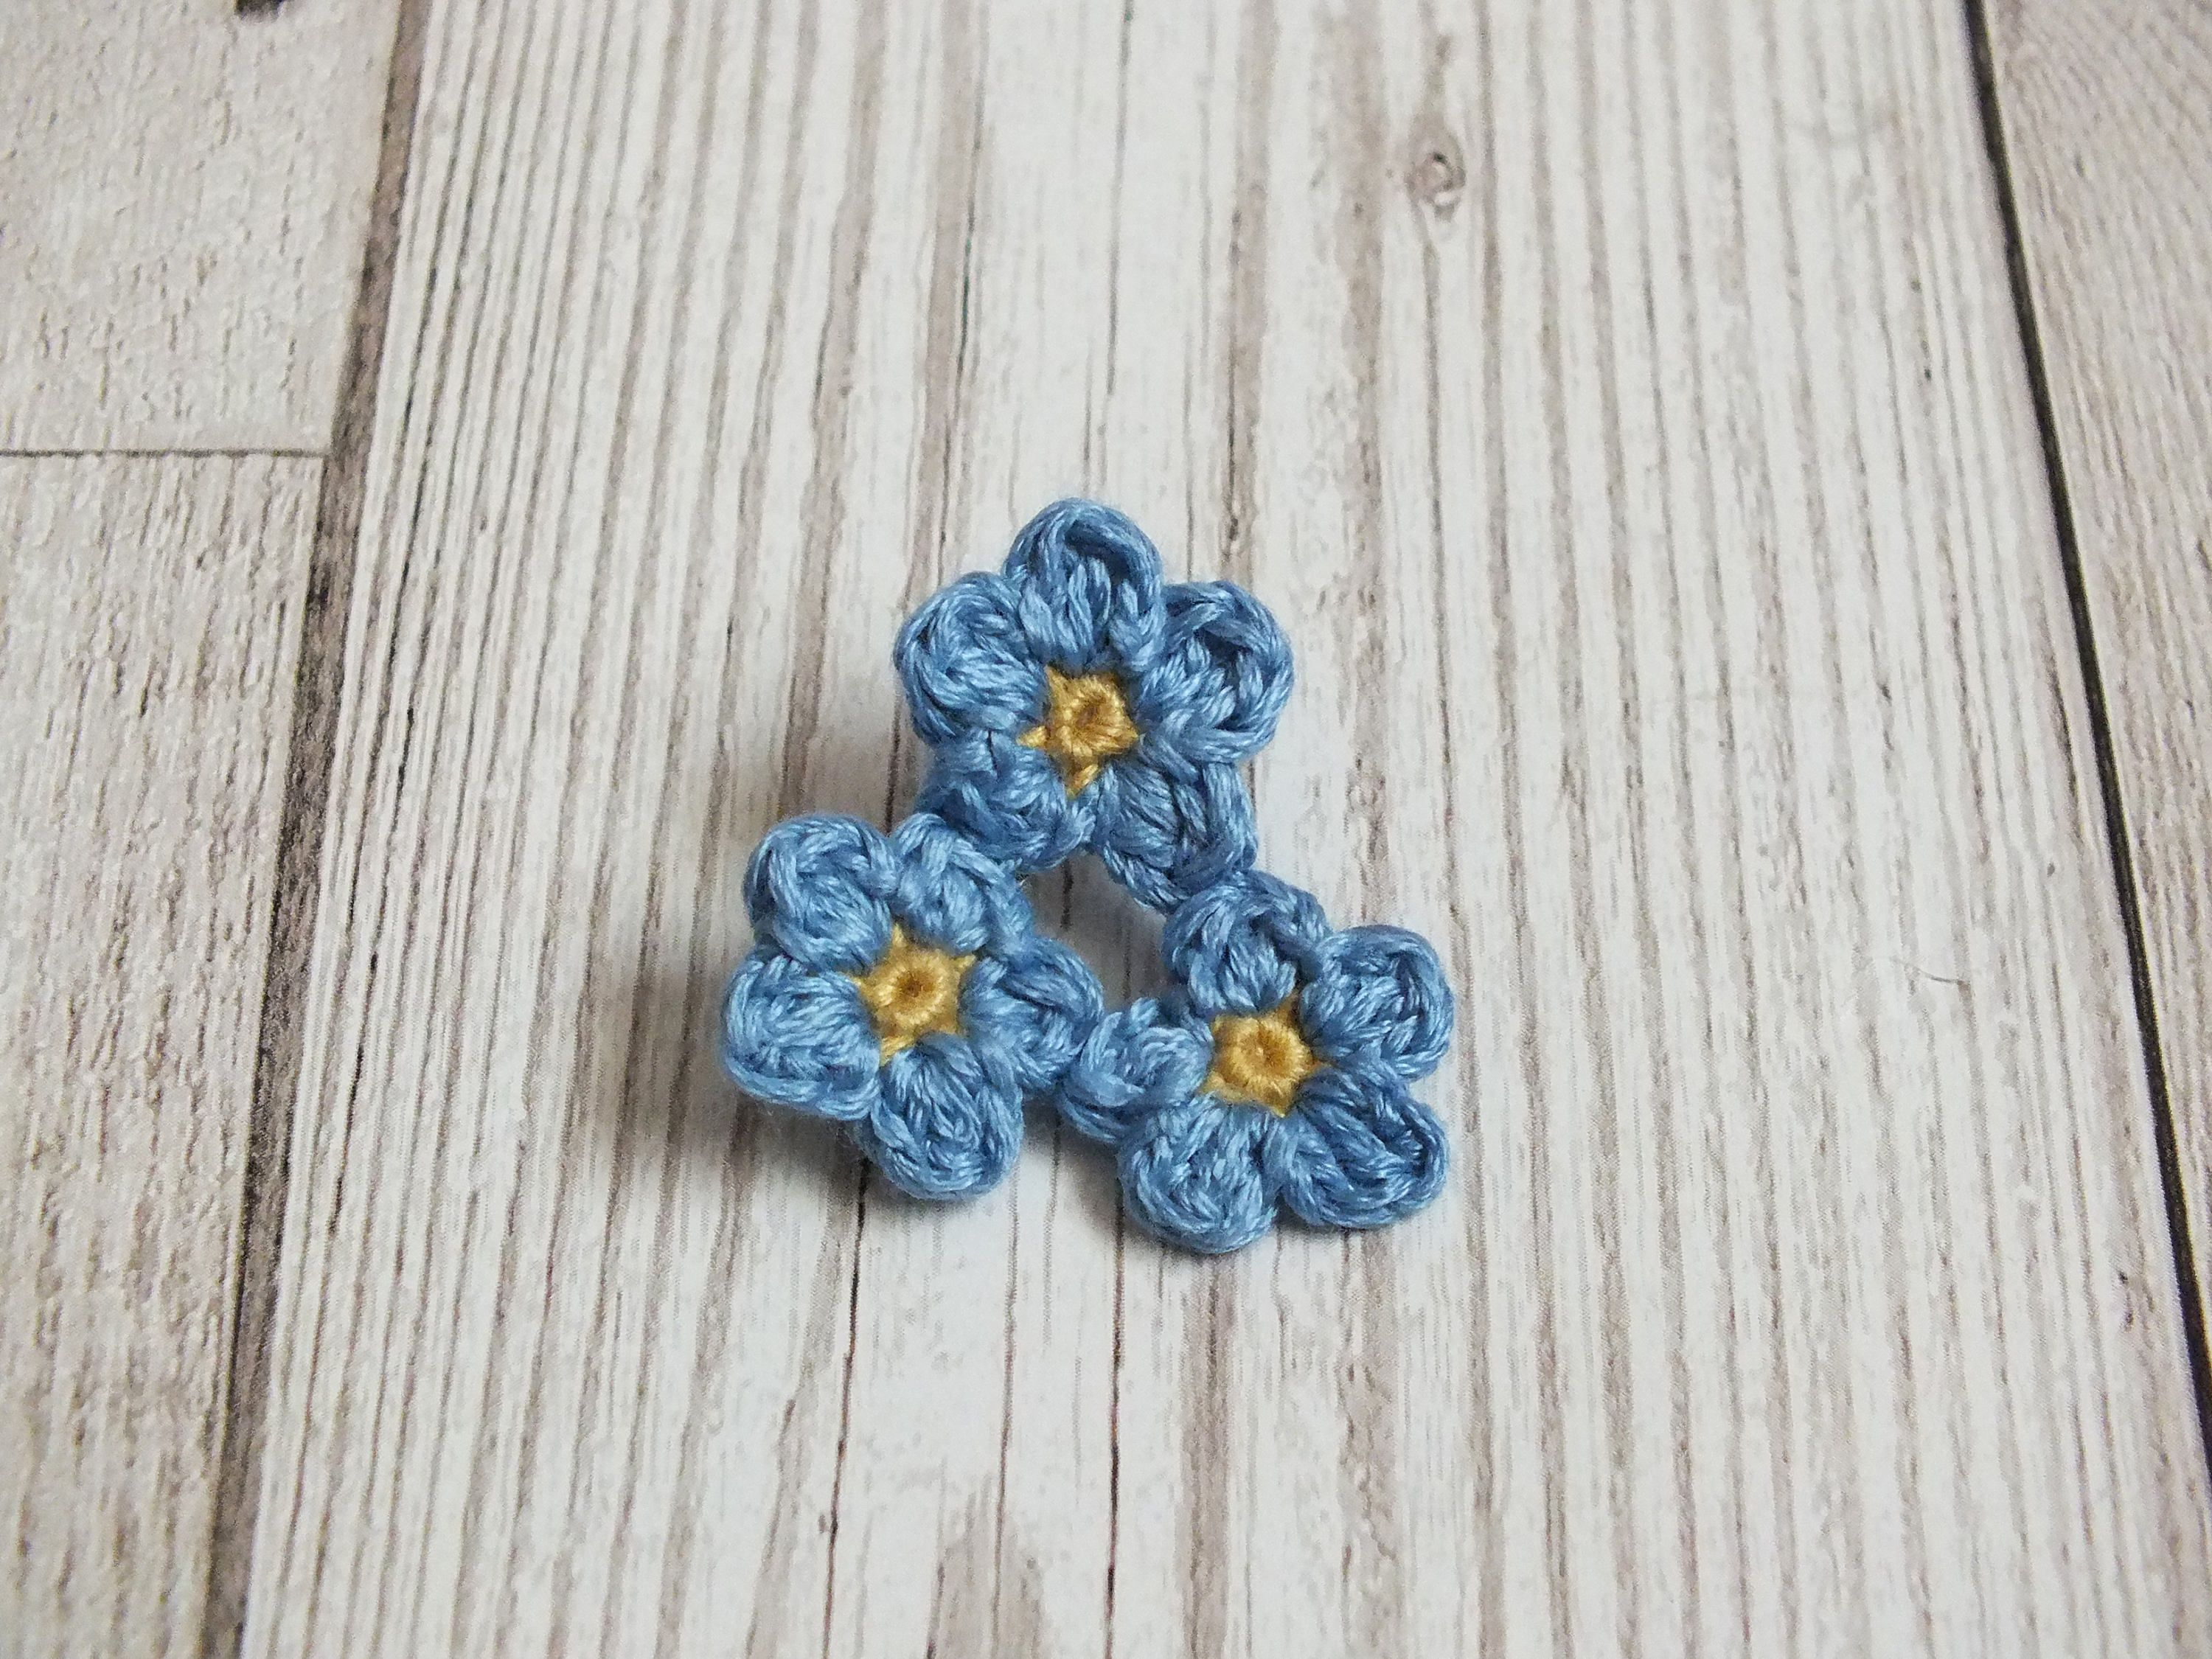 crocheted brooch flower embellishments pinterest pin flowers crochet tutorial